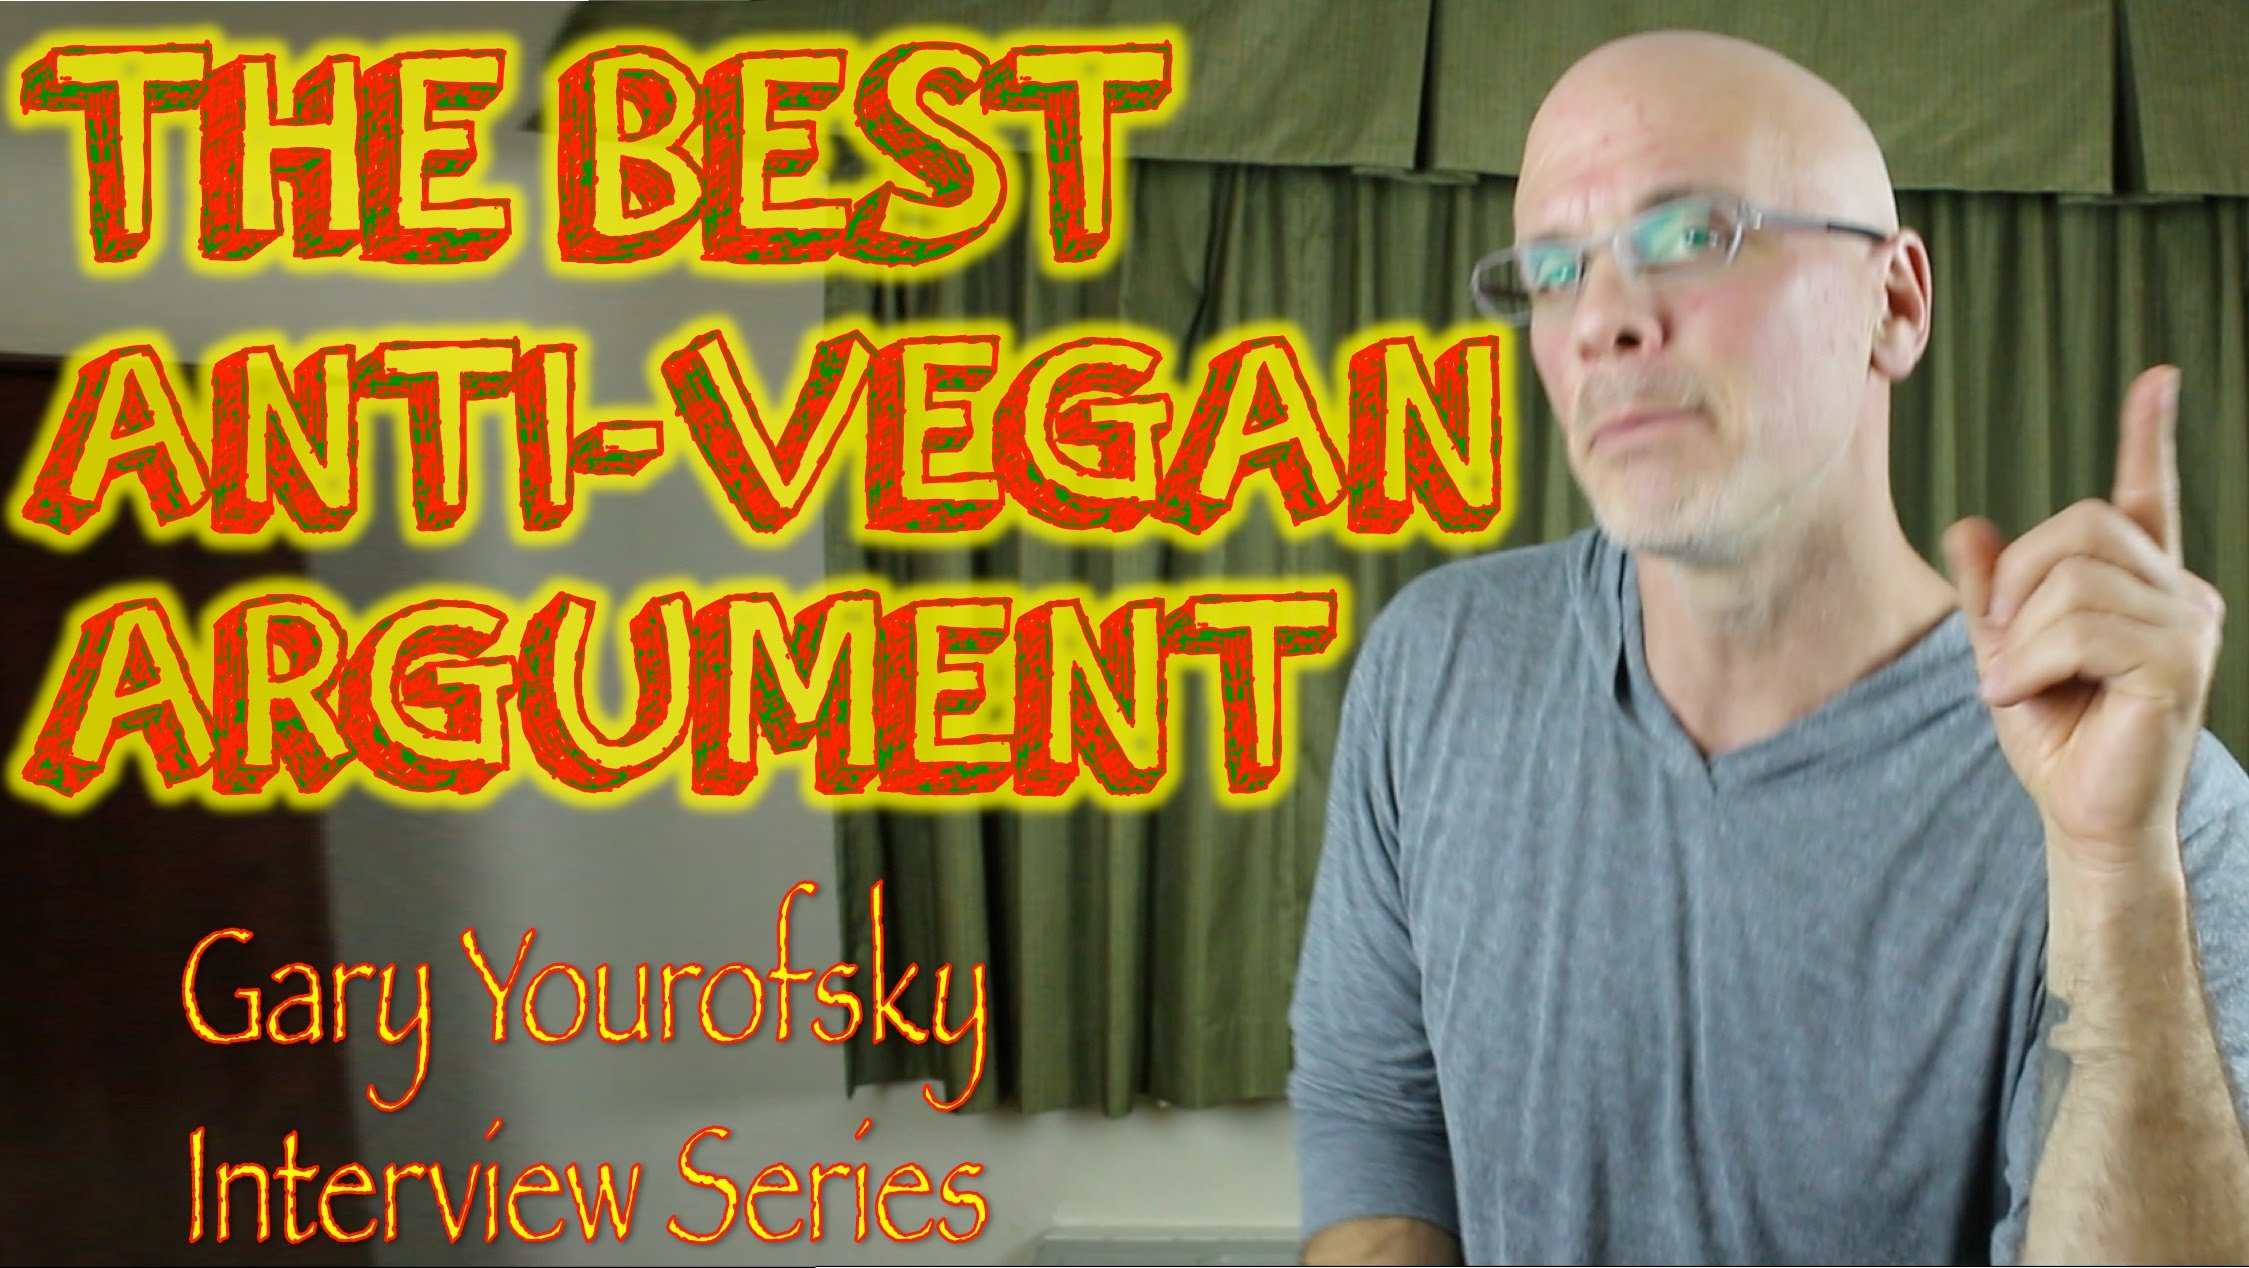 How To: Argue Against Vegetarians